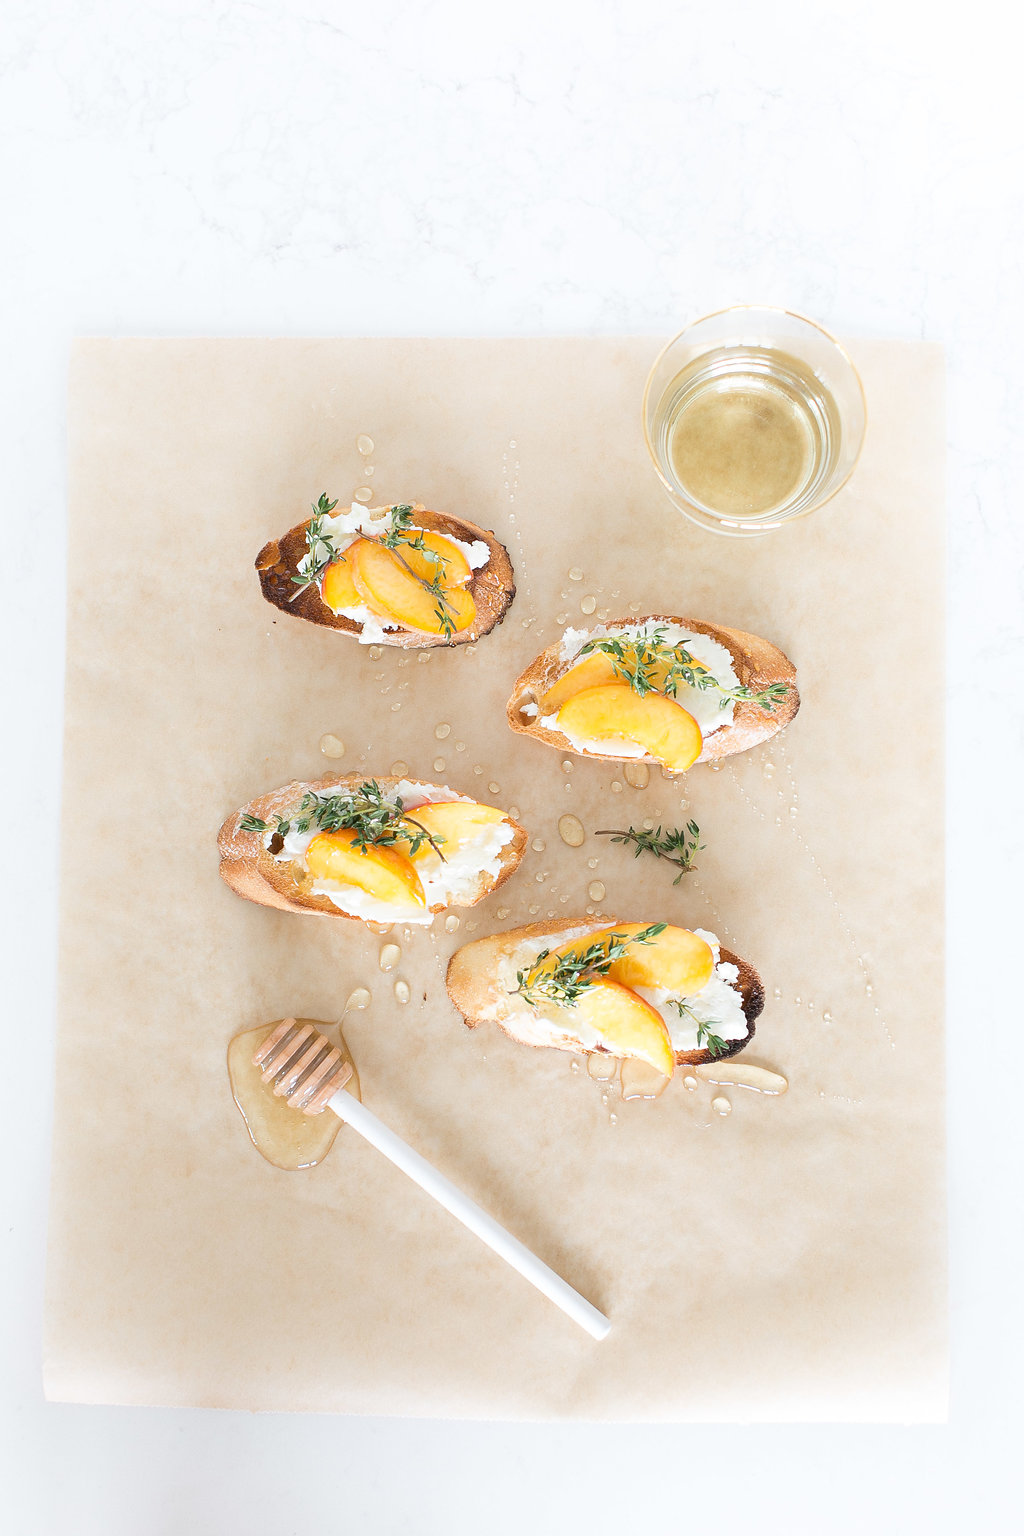 This Peach Chèvre Crostini is a perfect pair for a Sandhill wine